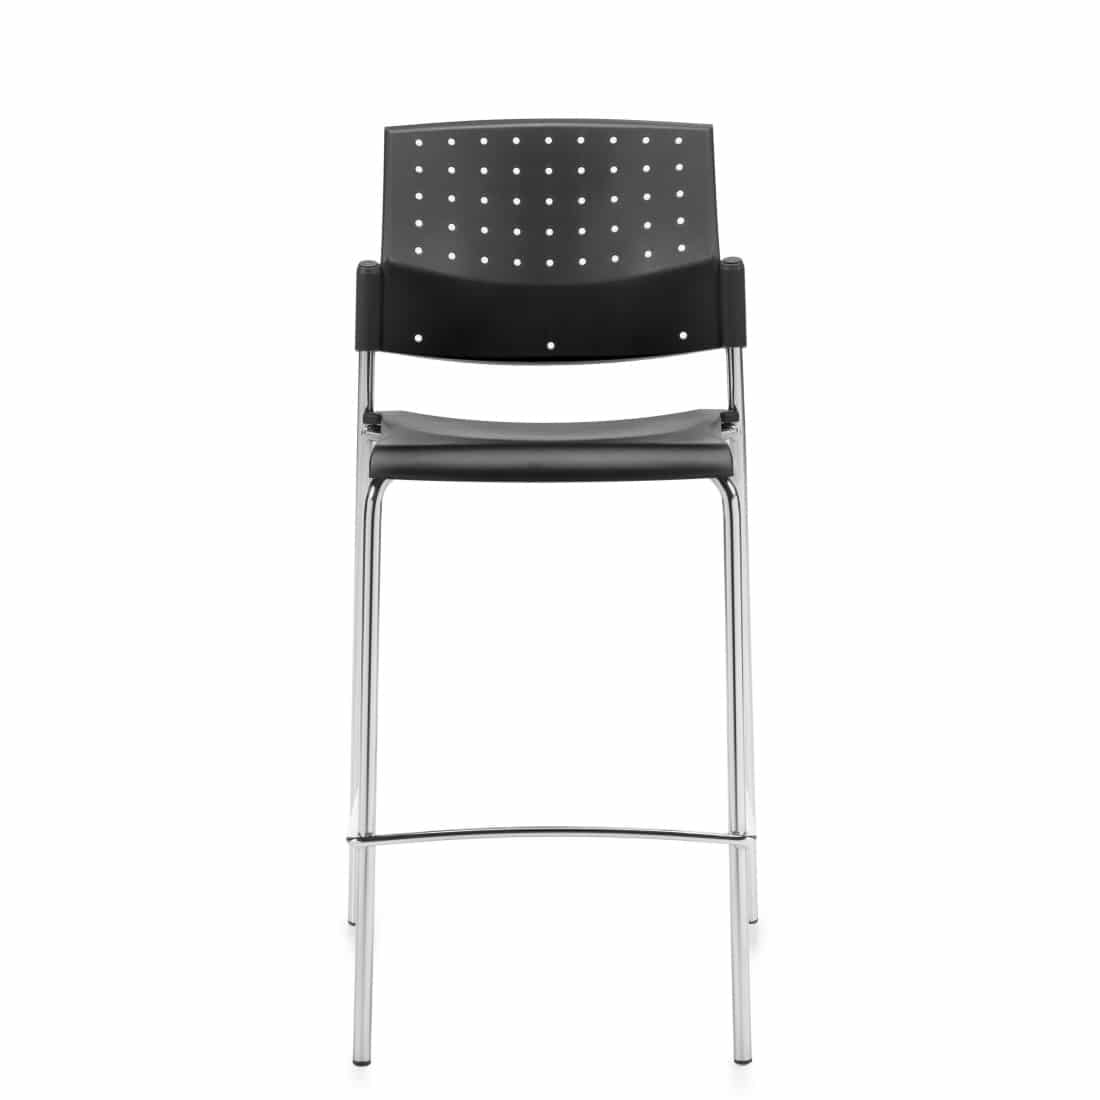 Armless Bar Stool, Black Polypropylene Seat & Back With Chrome Frame (6558)